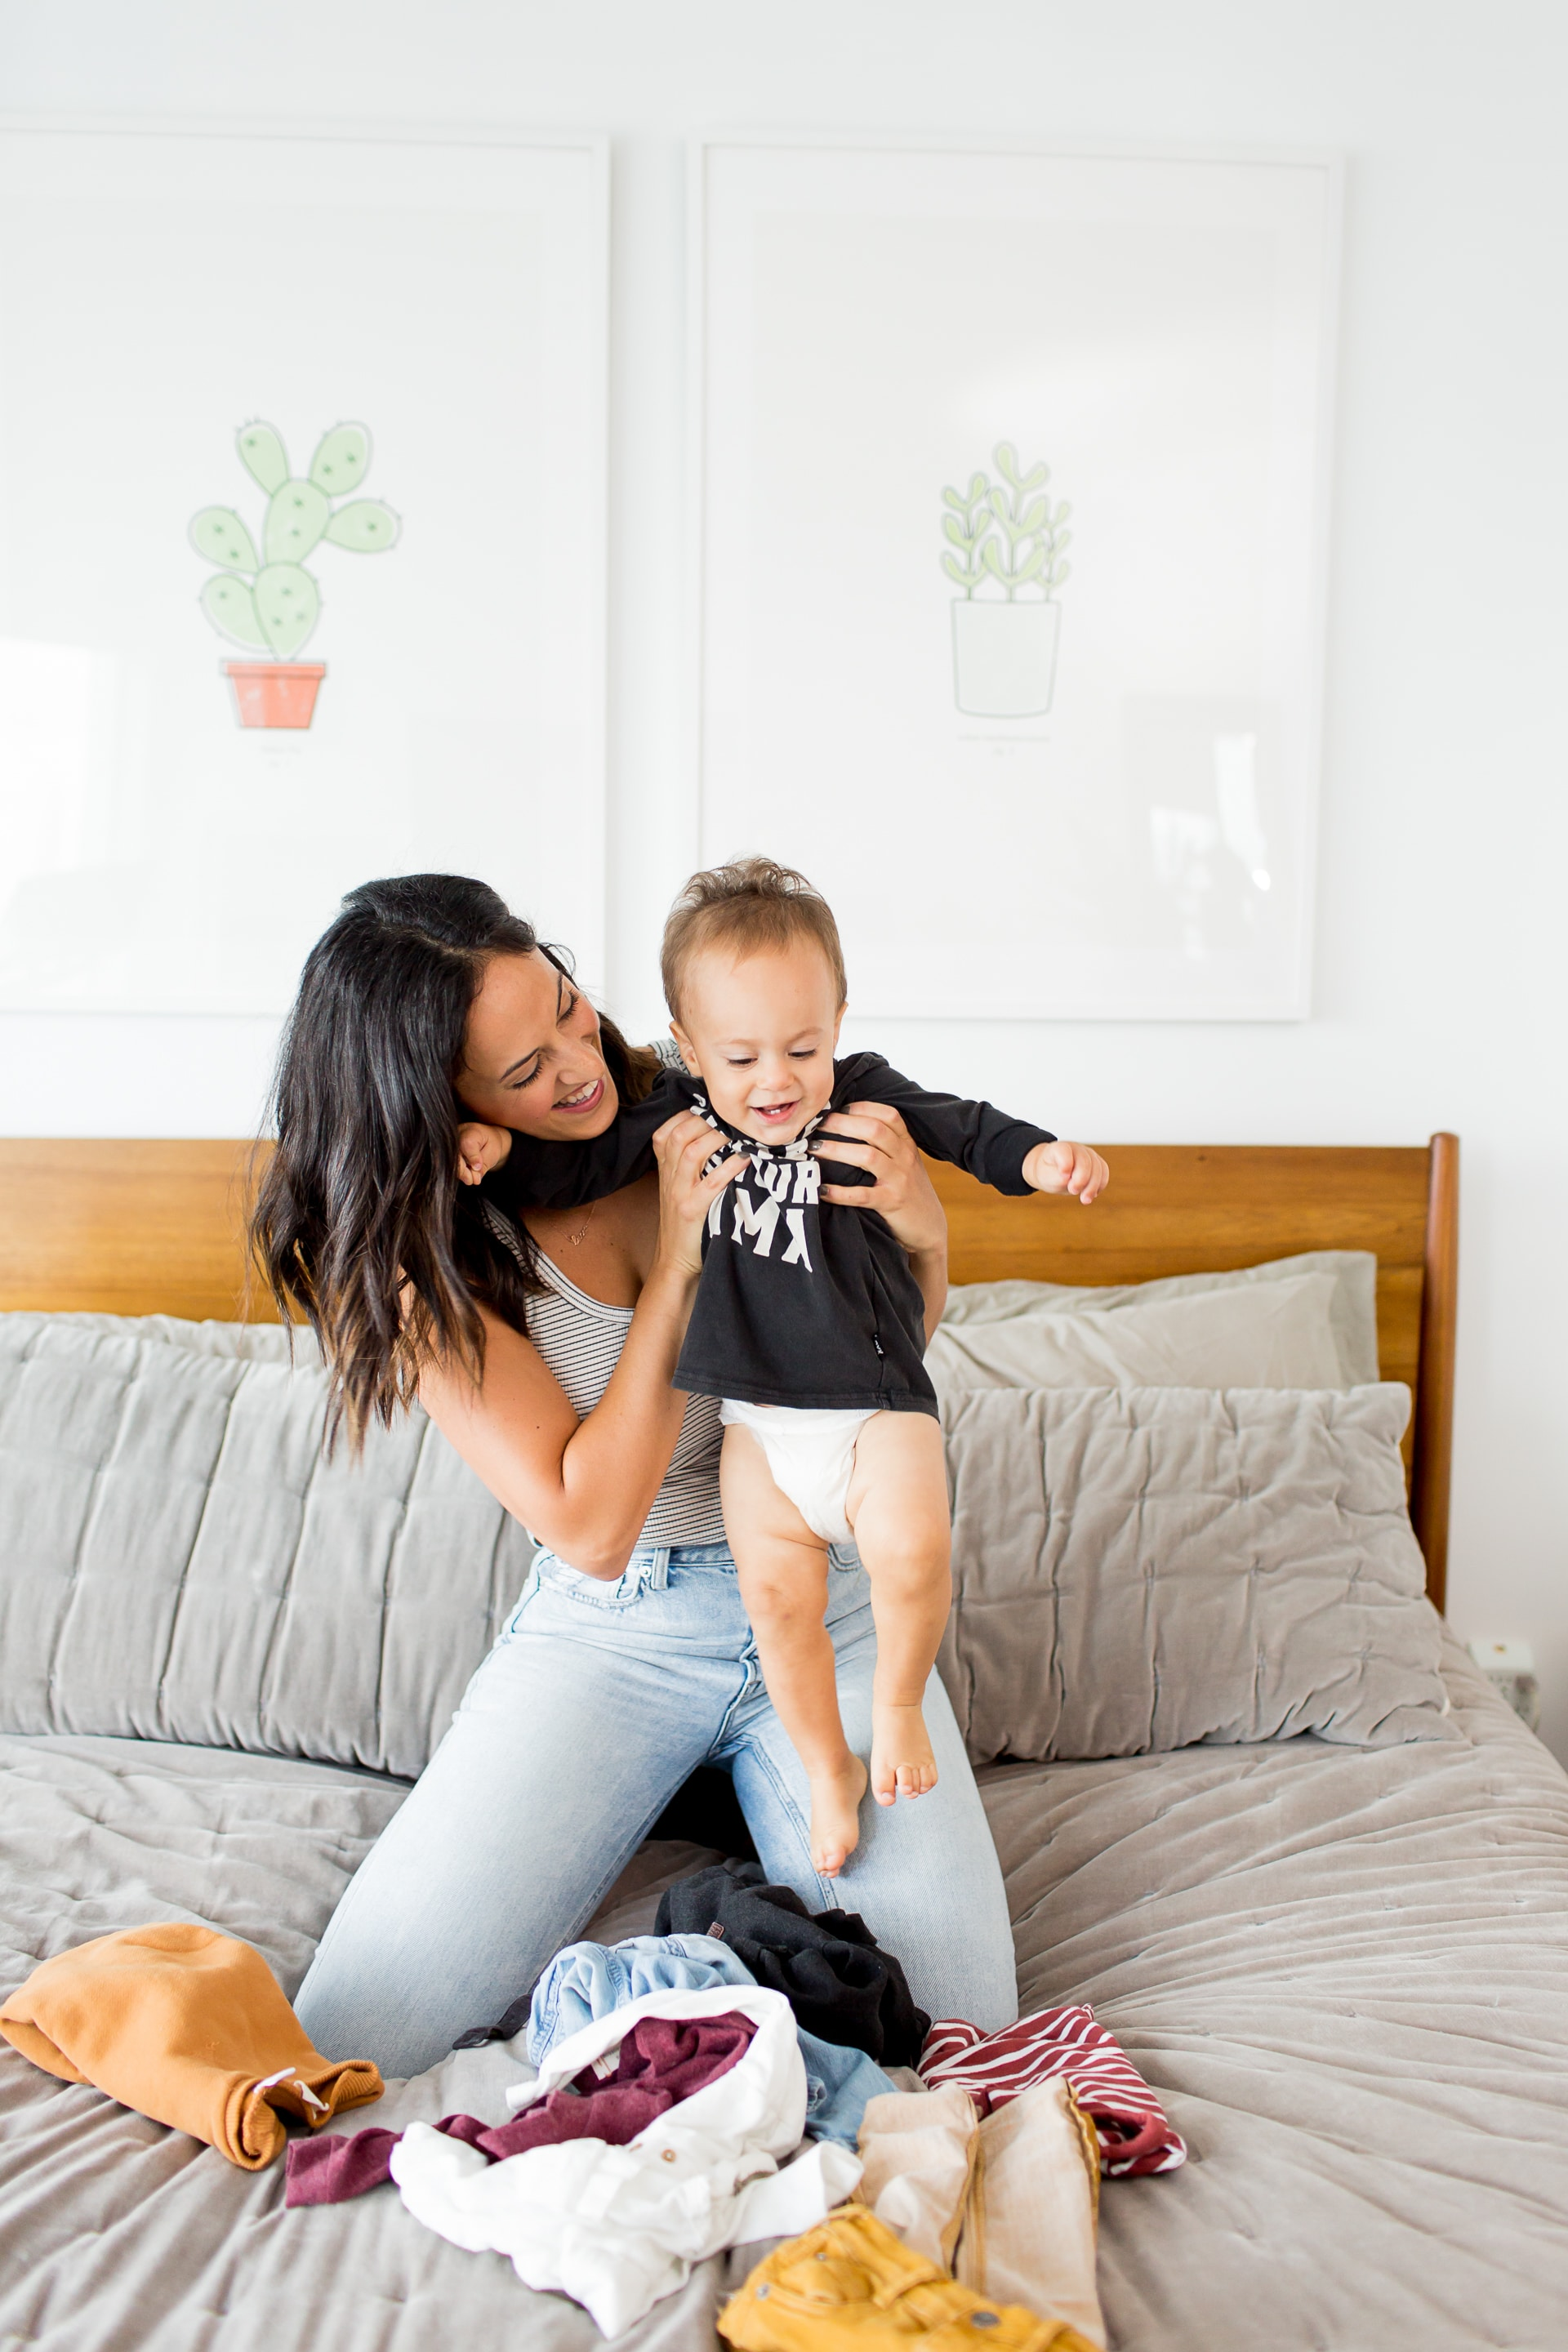 My Favorite Places to Buy Baby and Toddler Clothes